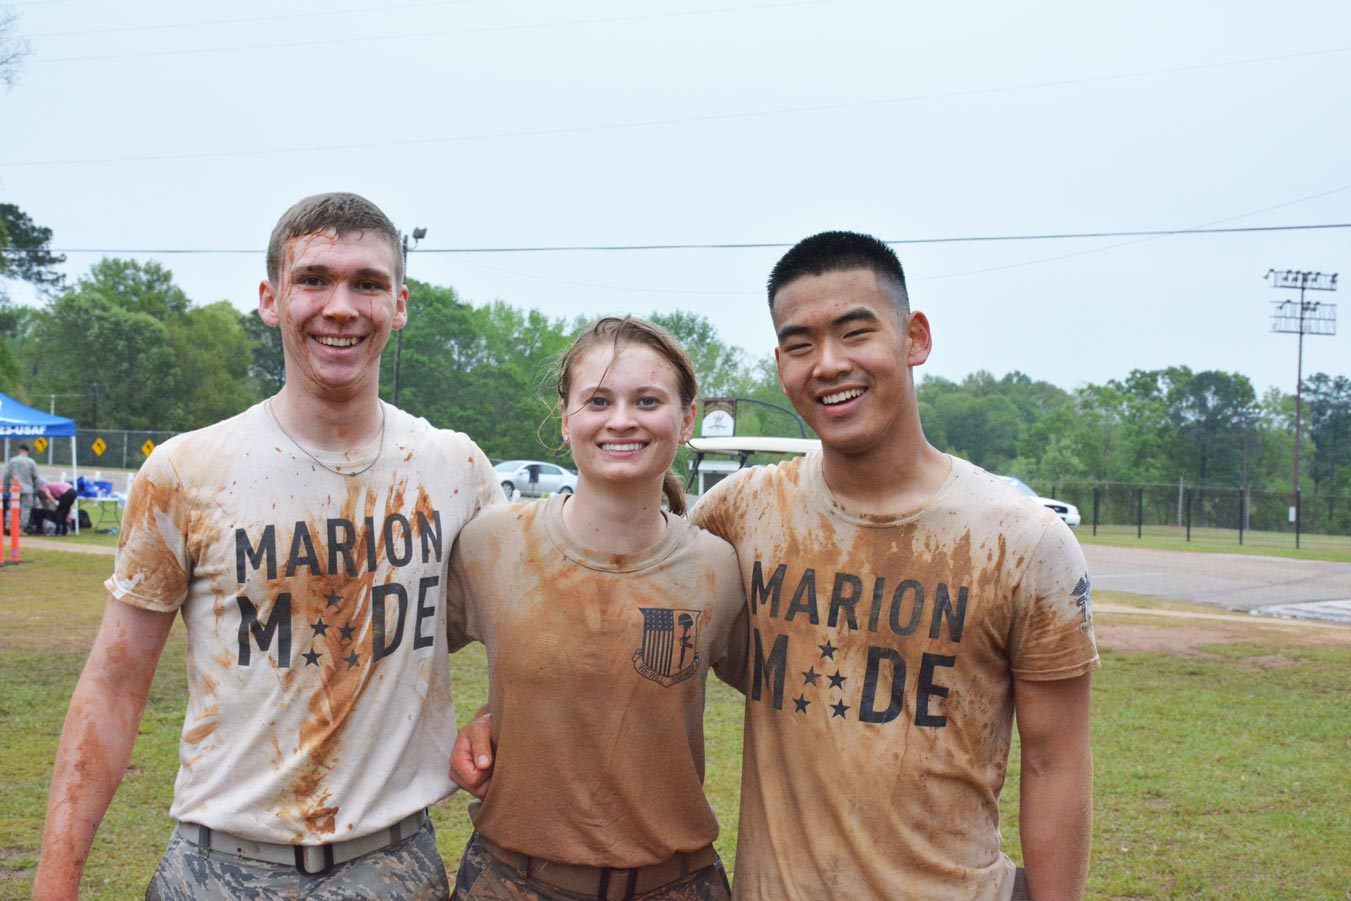 Marion Made students covered in mud smiling for a picture